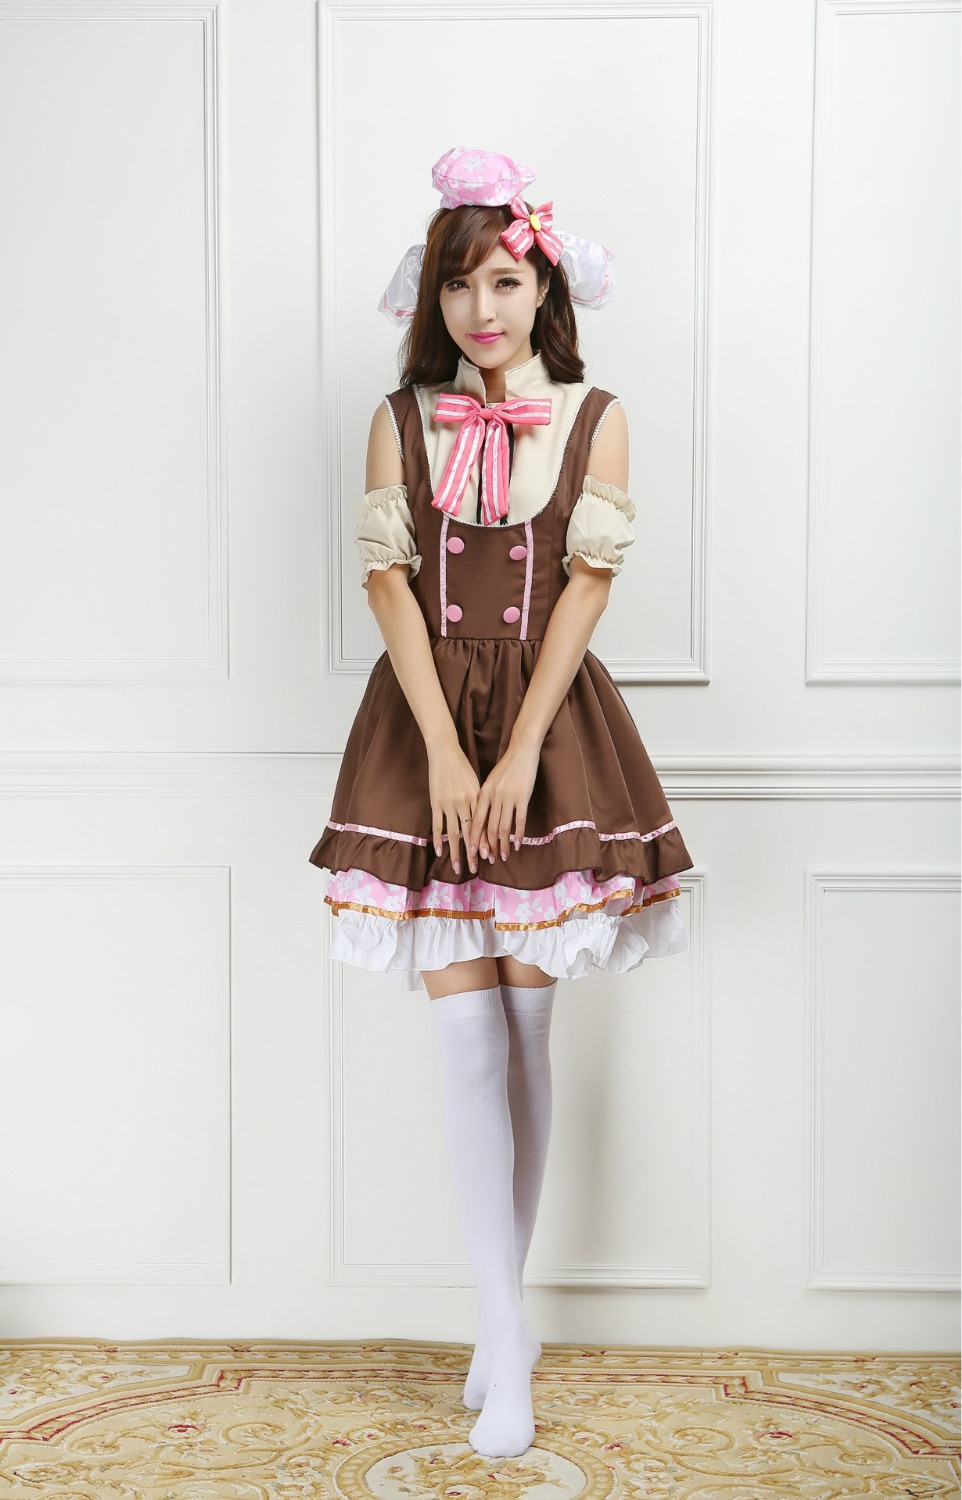 Love Live Sweet Pink Bow Girls Cosplay Costume Kawaii